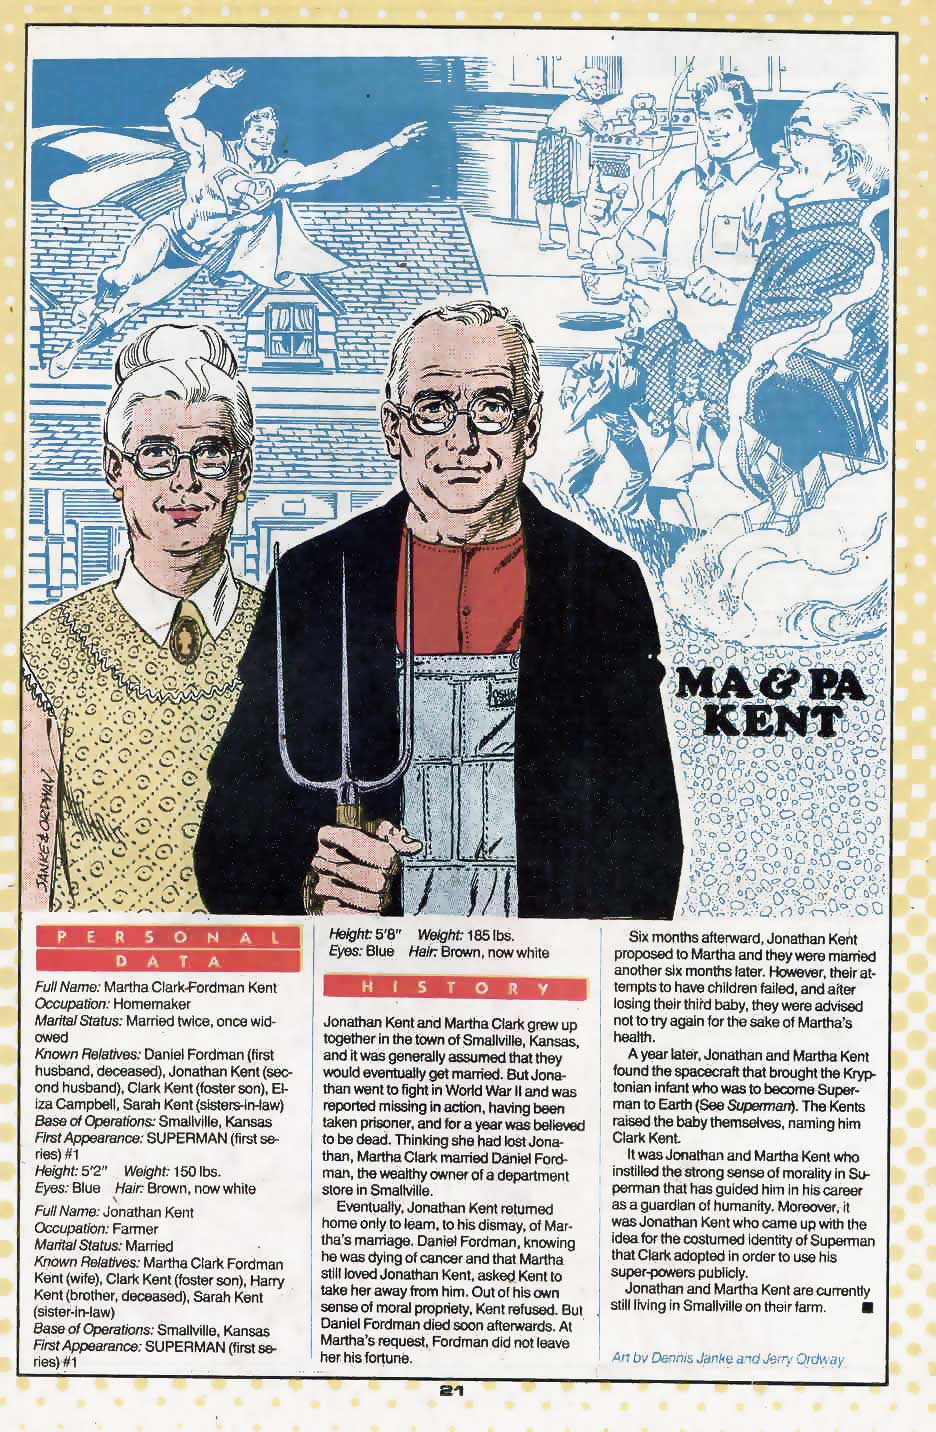 Ma and Pa Kent by Dennis Janke and Jerry Ordway